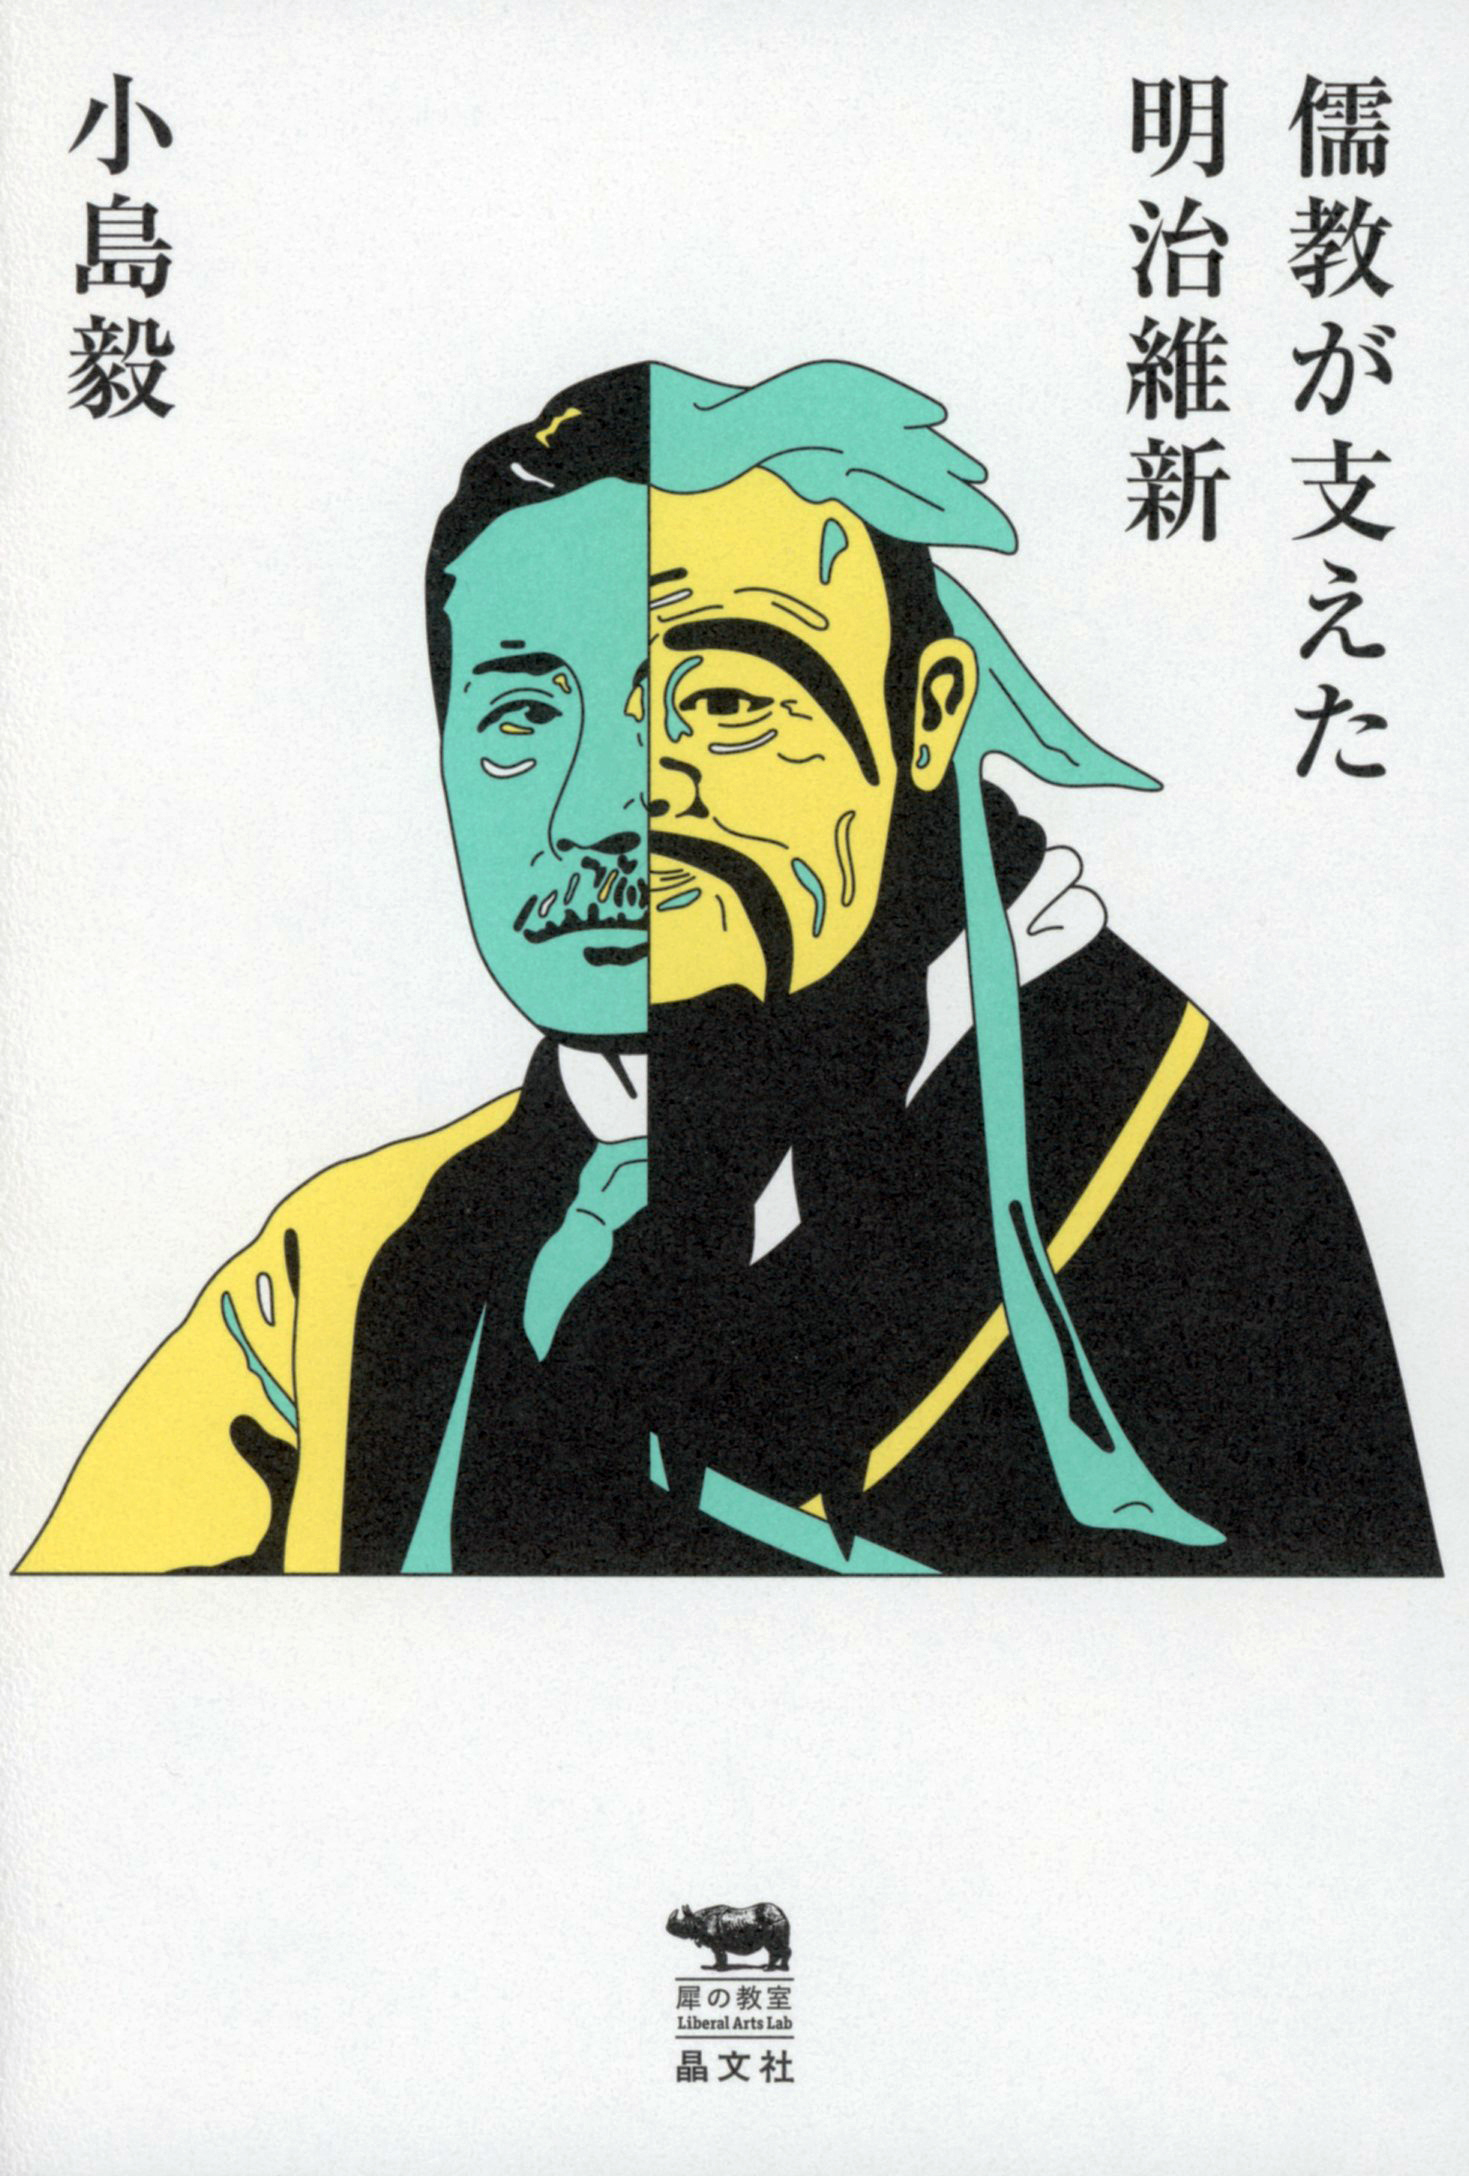 Portraits of Confucius and Soseki Natsume on a white cover